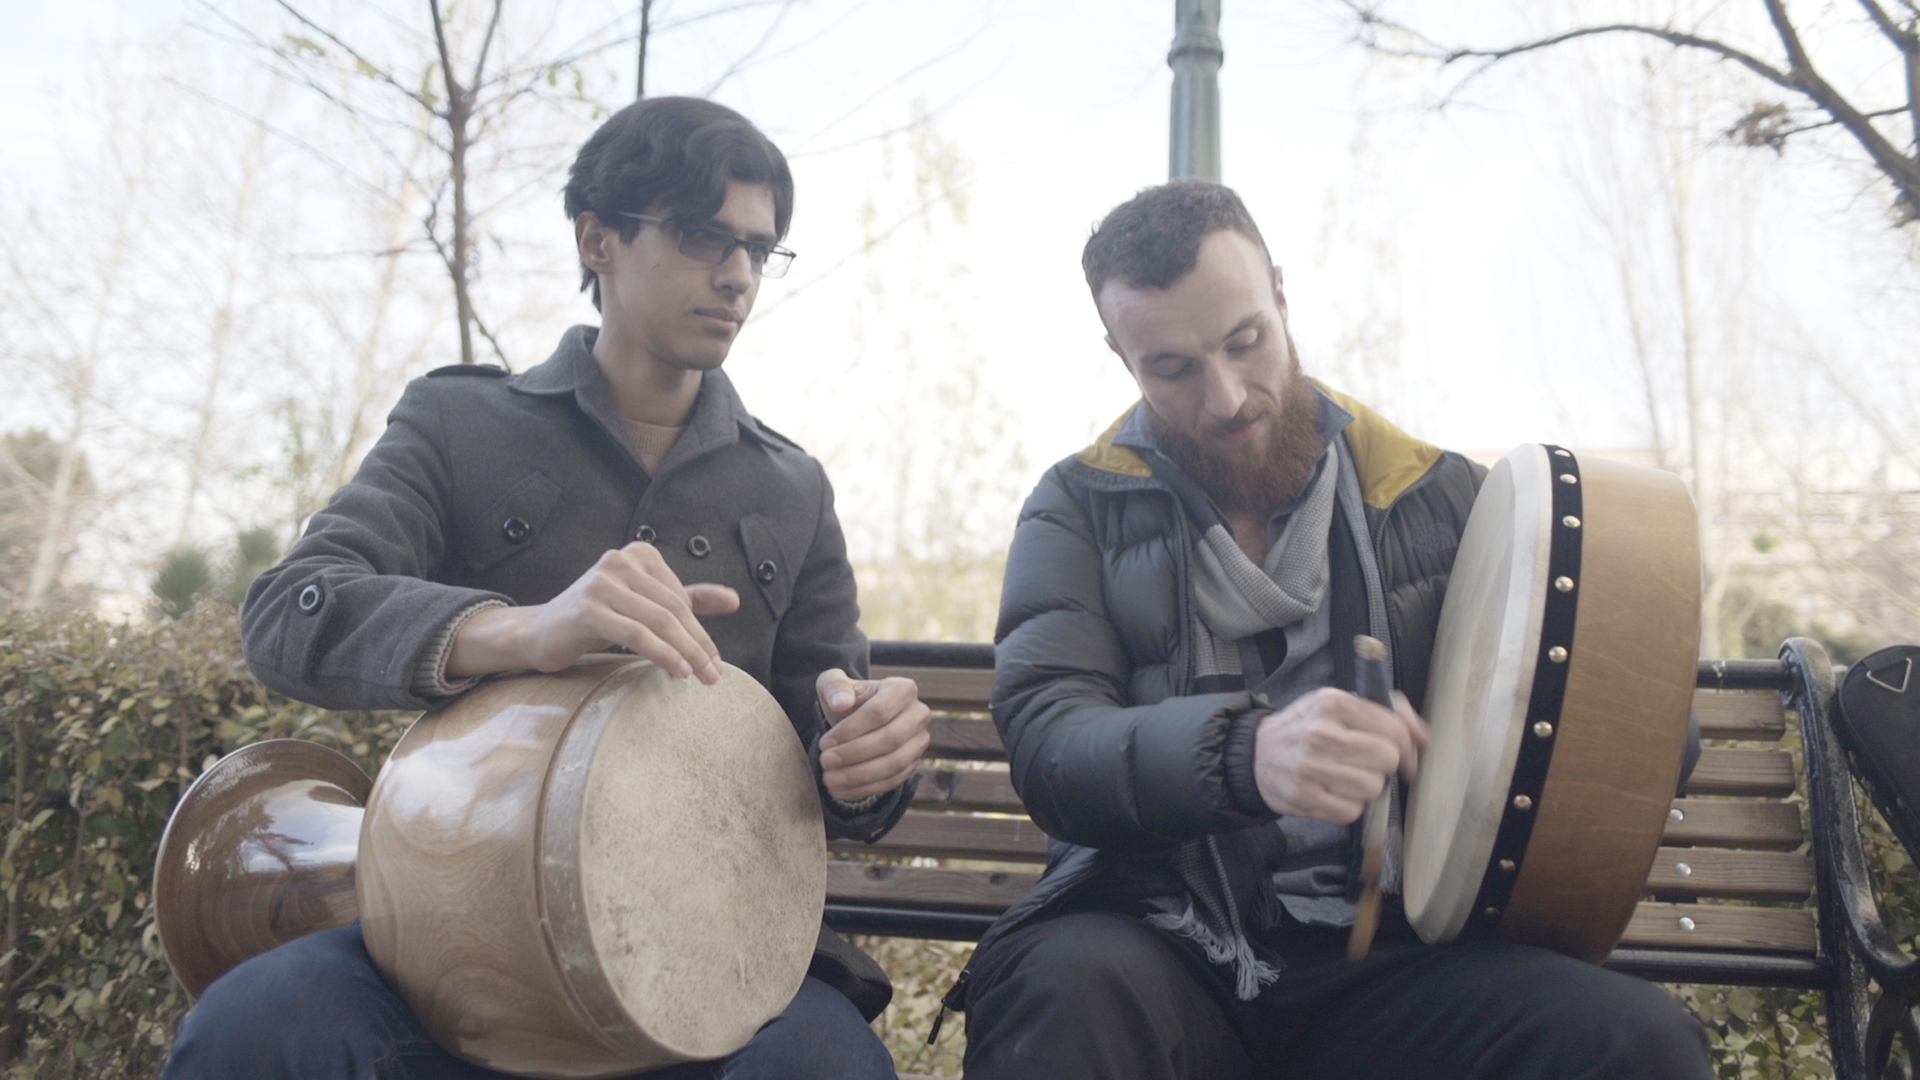 - HIDDEN DRUMMERS IS A SERIES OF FILMS REVEALING ANCIENT AND AWESOME DRUMMING TRADITIONS FROM AROUND THE WORLD through the eyes of THE YOUNG PEOPLE WHO ARE PASSIONATE ABOUT KEEPING THESE VALUABLE TRADITIONS ALIVE.